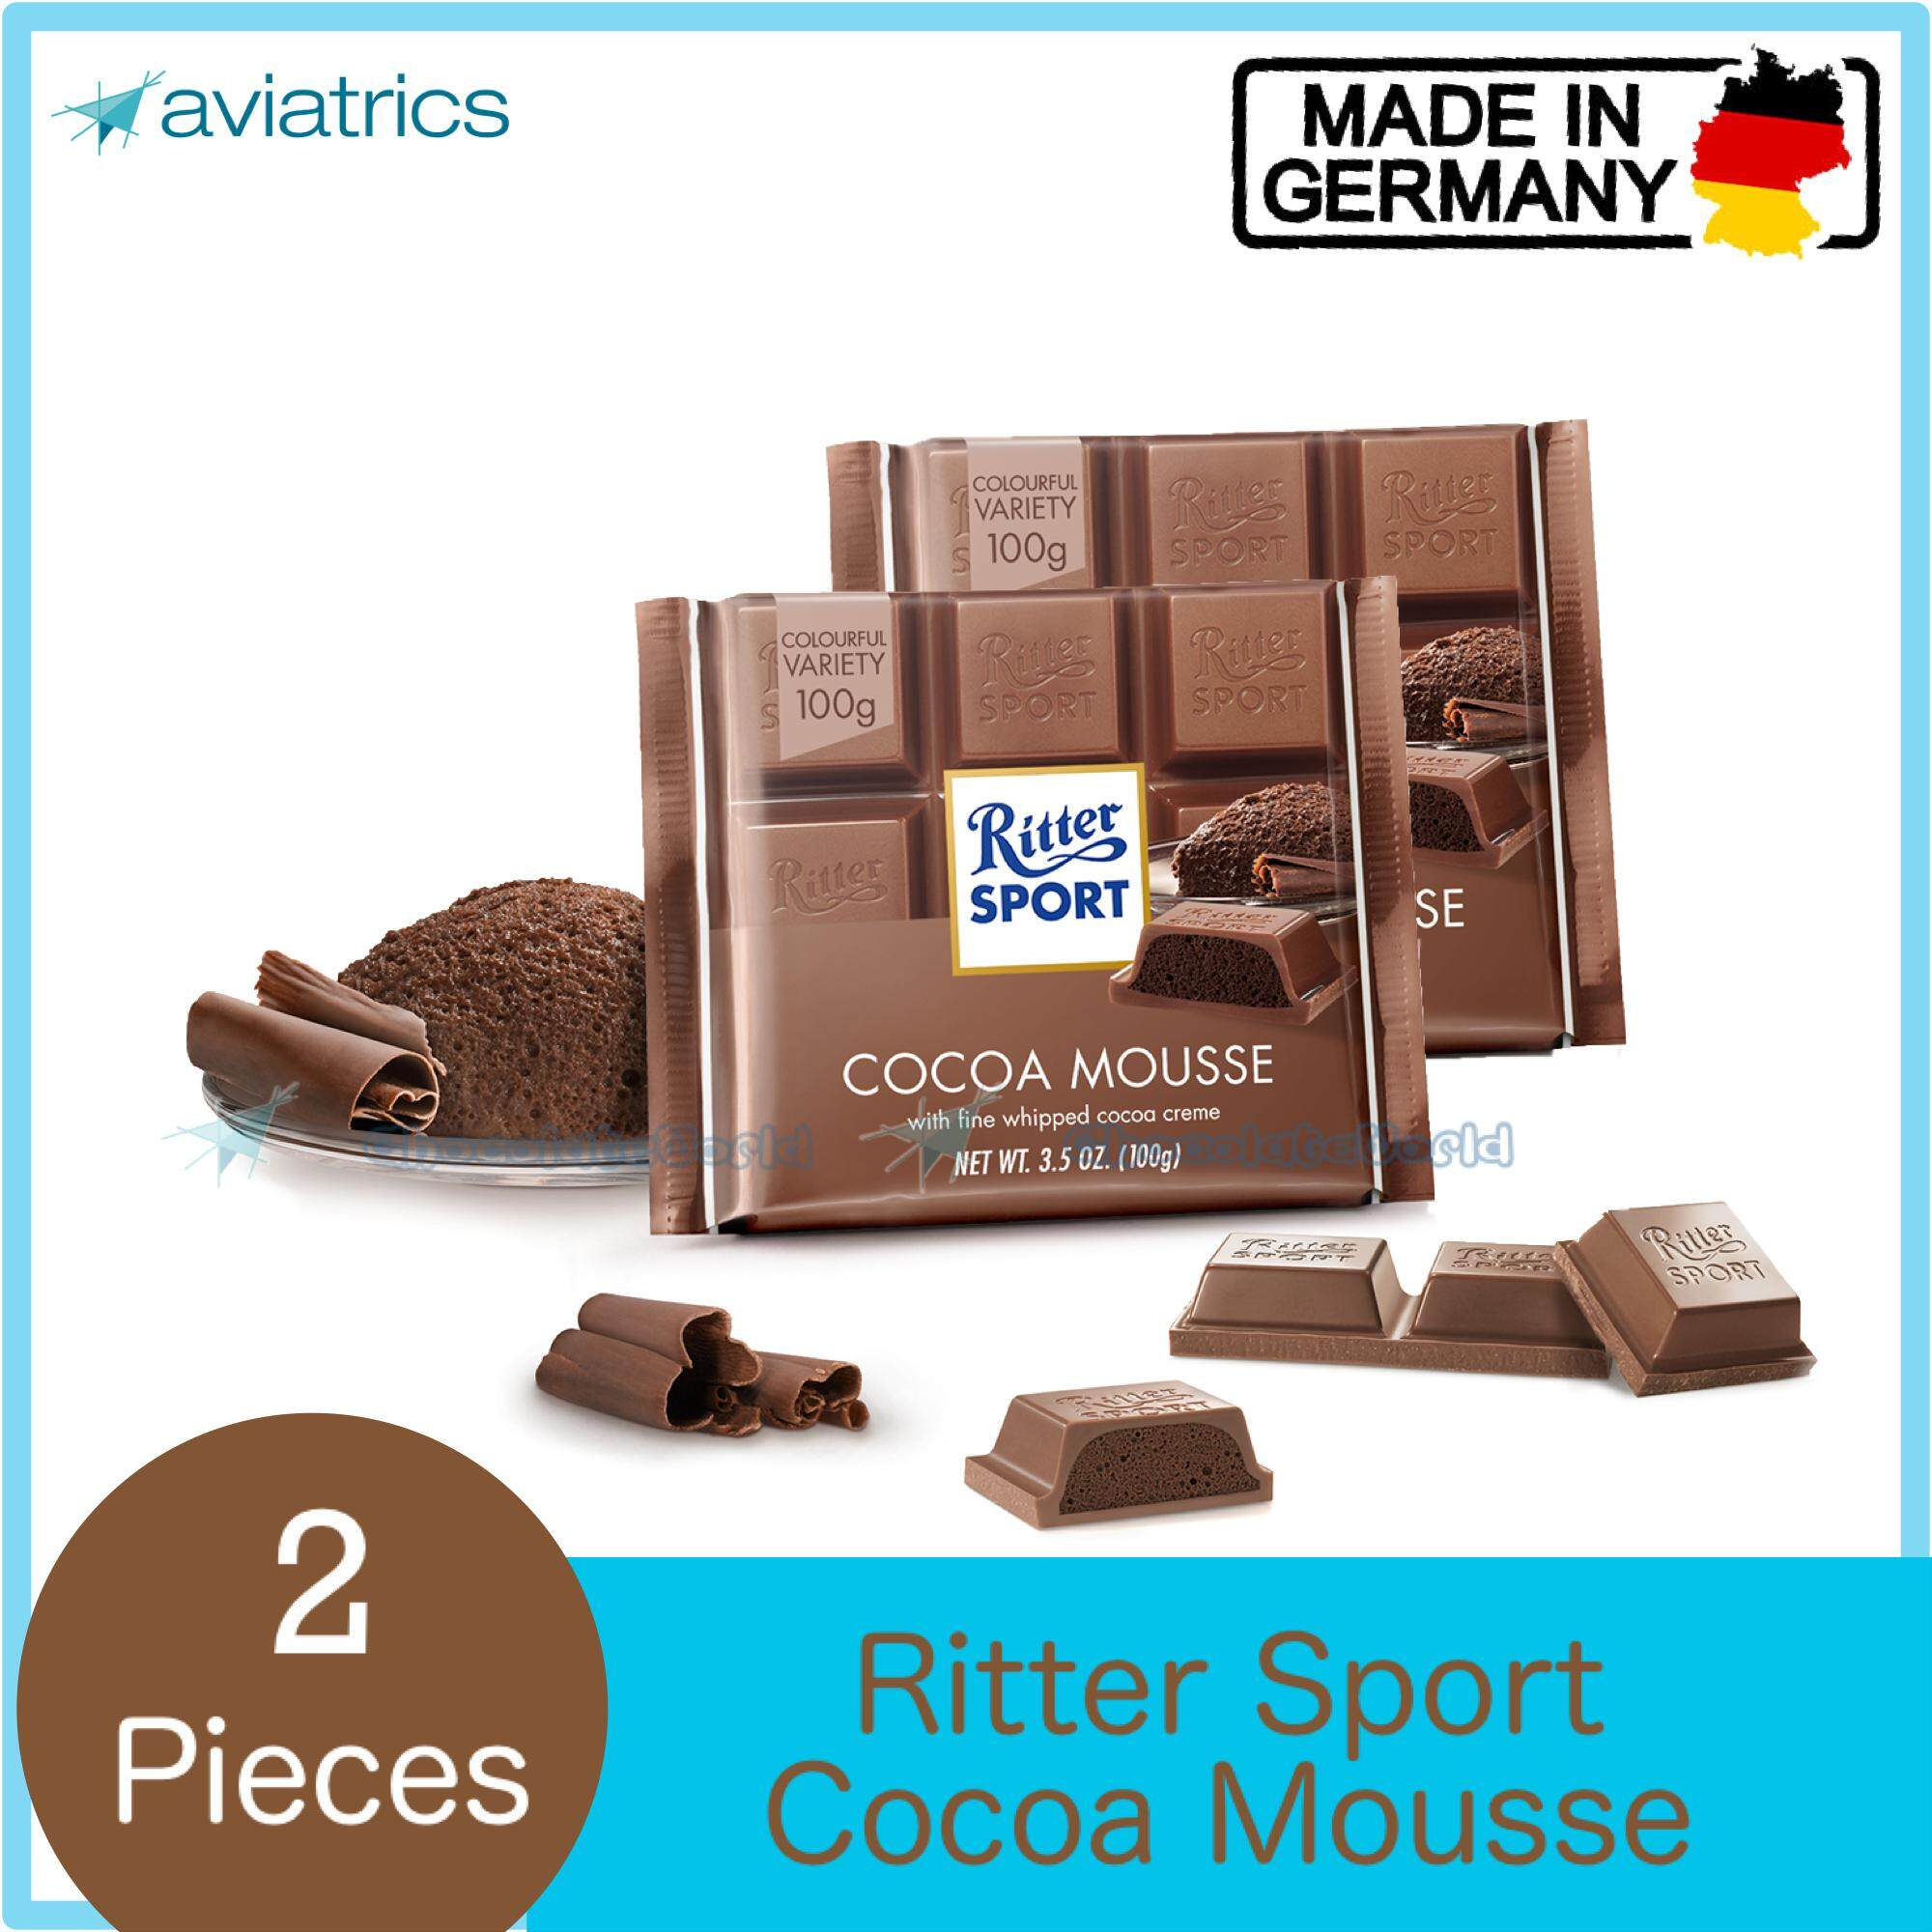 Ritter Sport Cocoa Mousse 100g X 2 (Made in Germany)